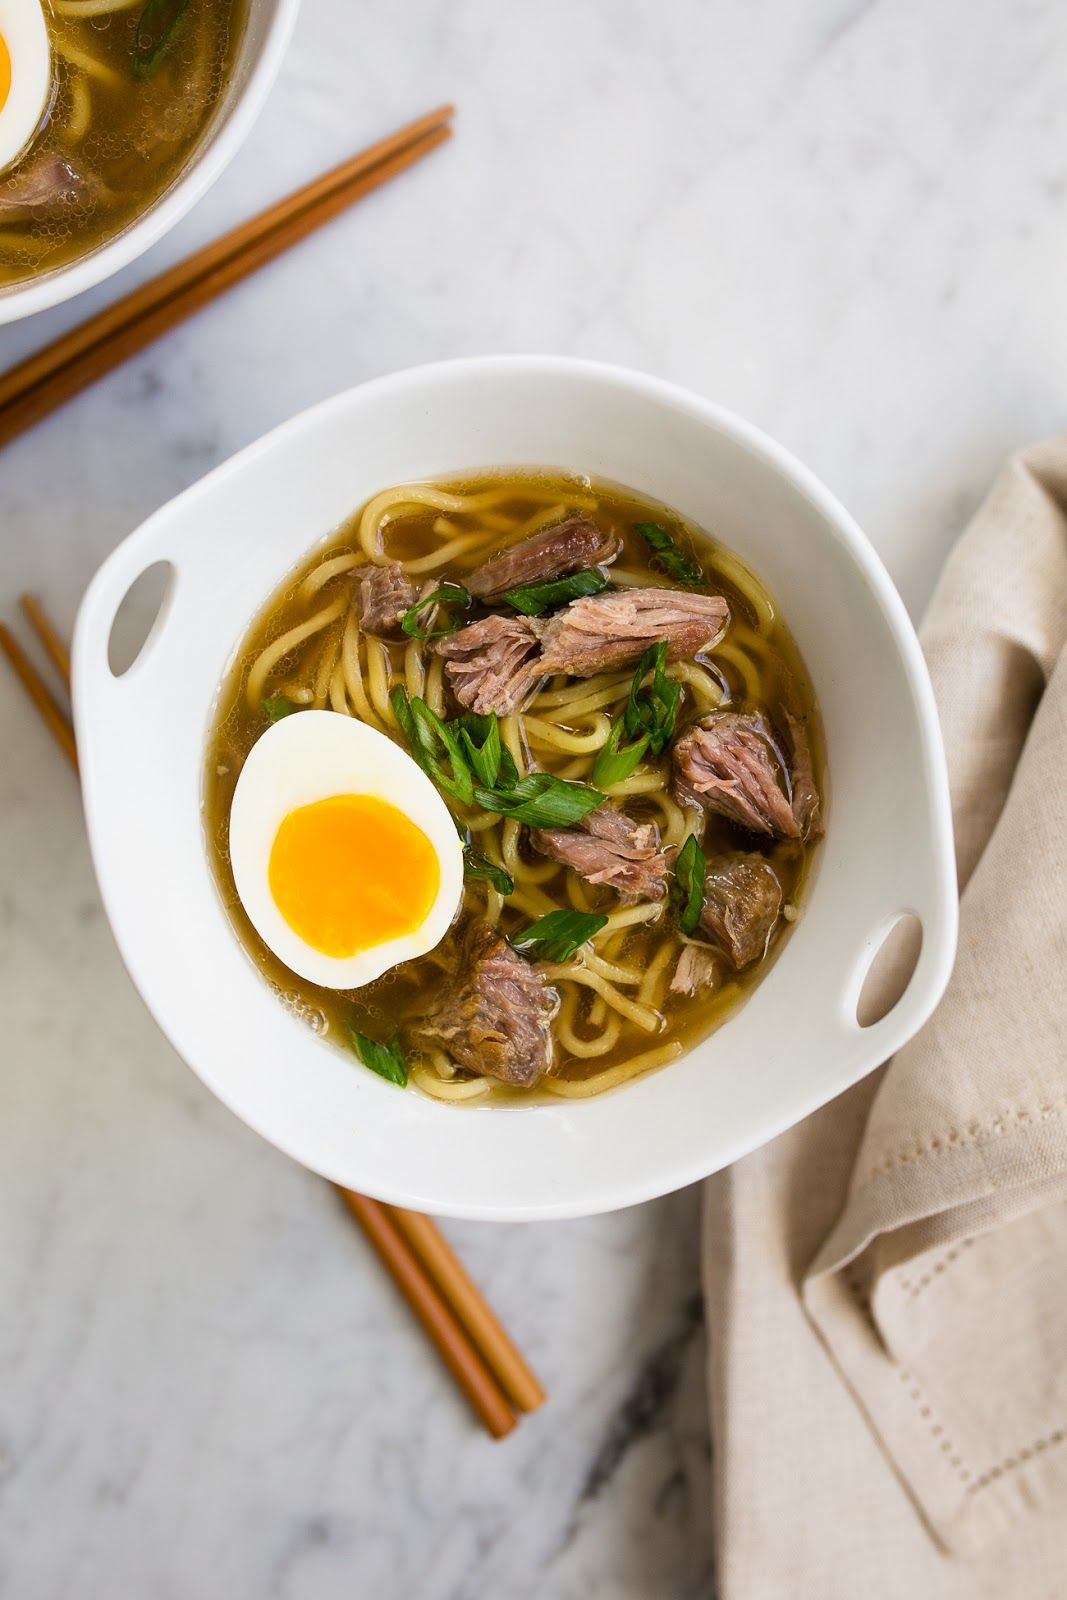 """When people ask me what is my favorite things to eat, the answer is easy – anything Asian with soup, """"Soupy Asian things"""" as I like to refer. I could have Asian soup anytime of the year but there is definitely no better time than now to have some. It's been a wet few days here in So-Cal and ramen is the perfect answer in this weather. I typically always stray away from making anything Asian at home."""